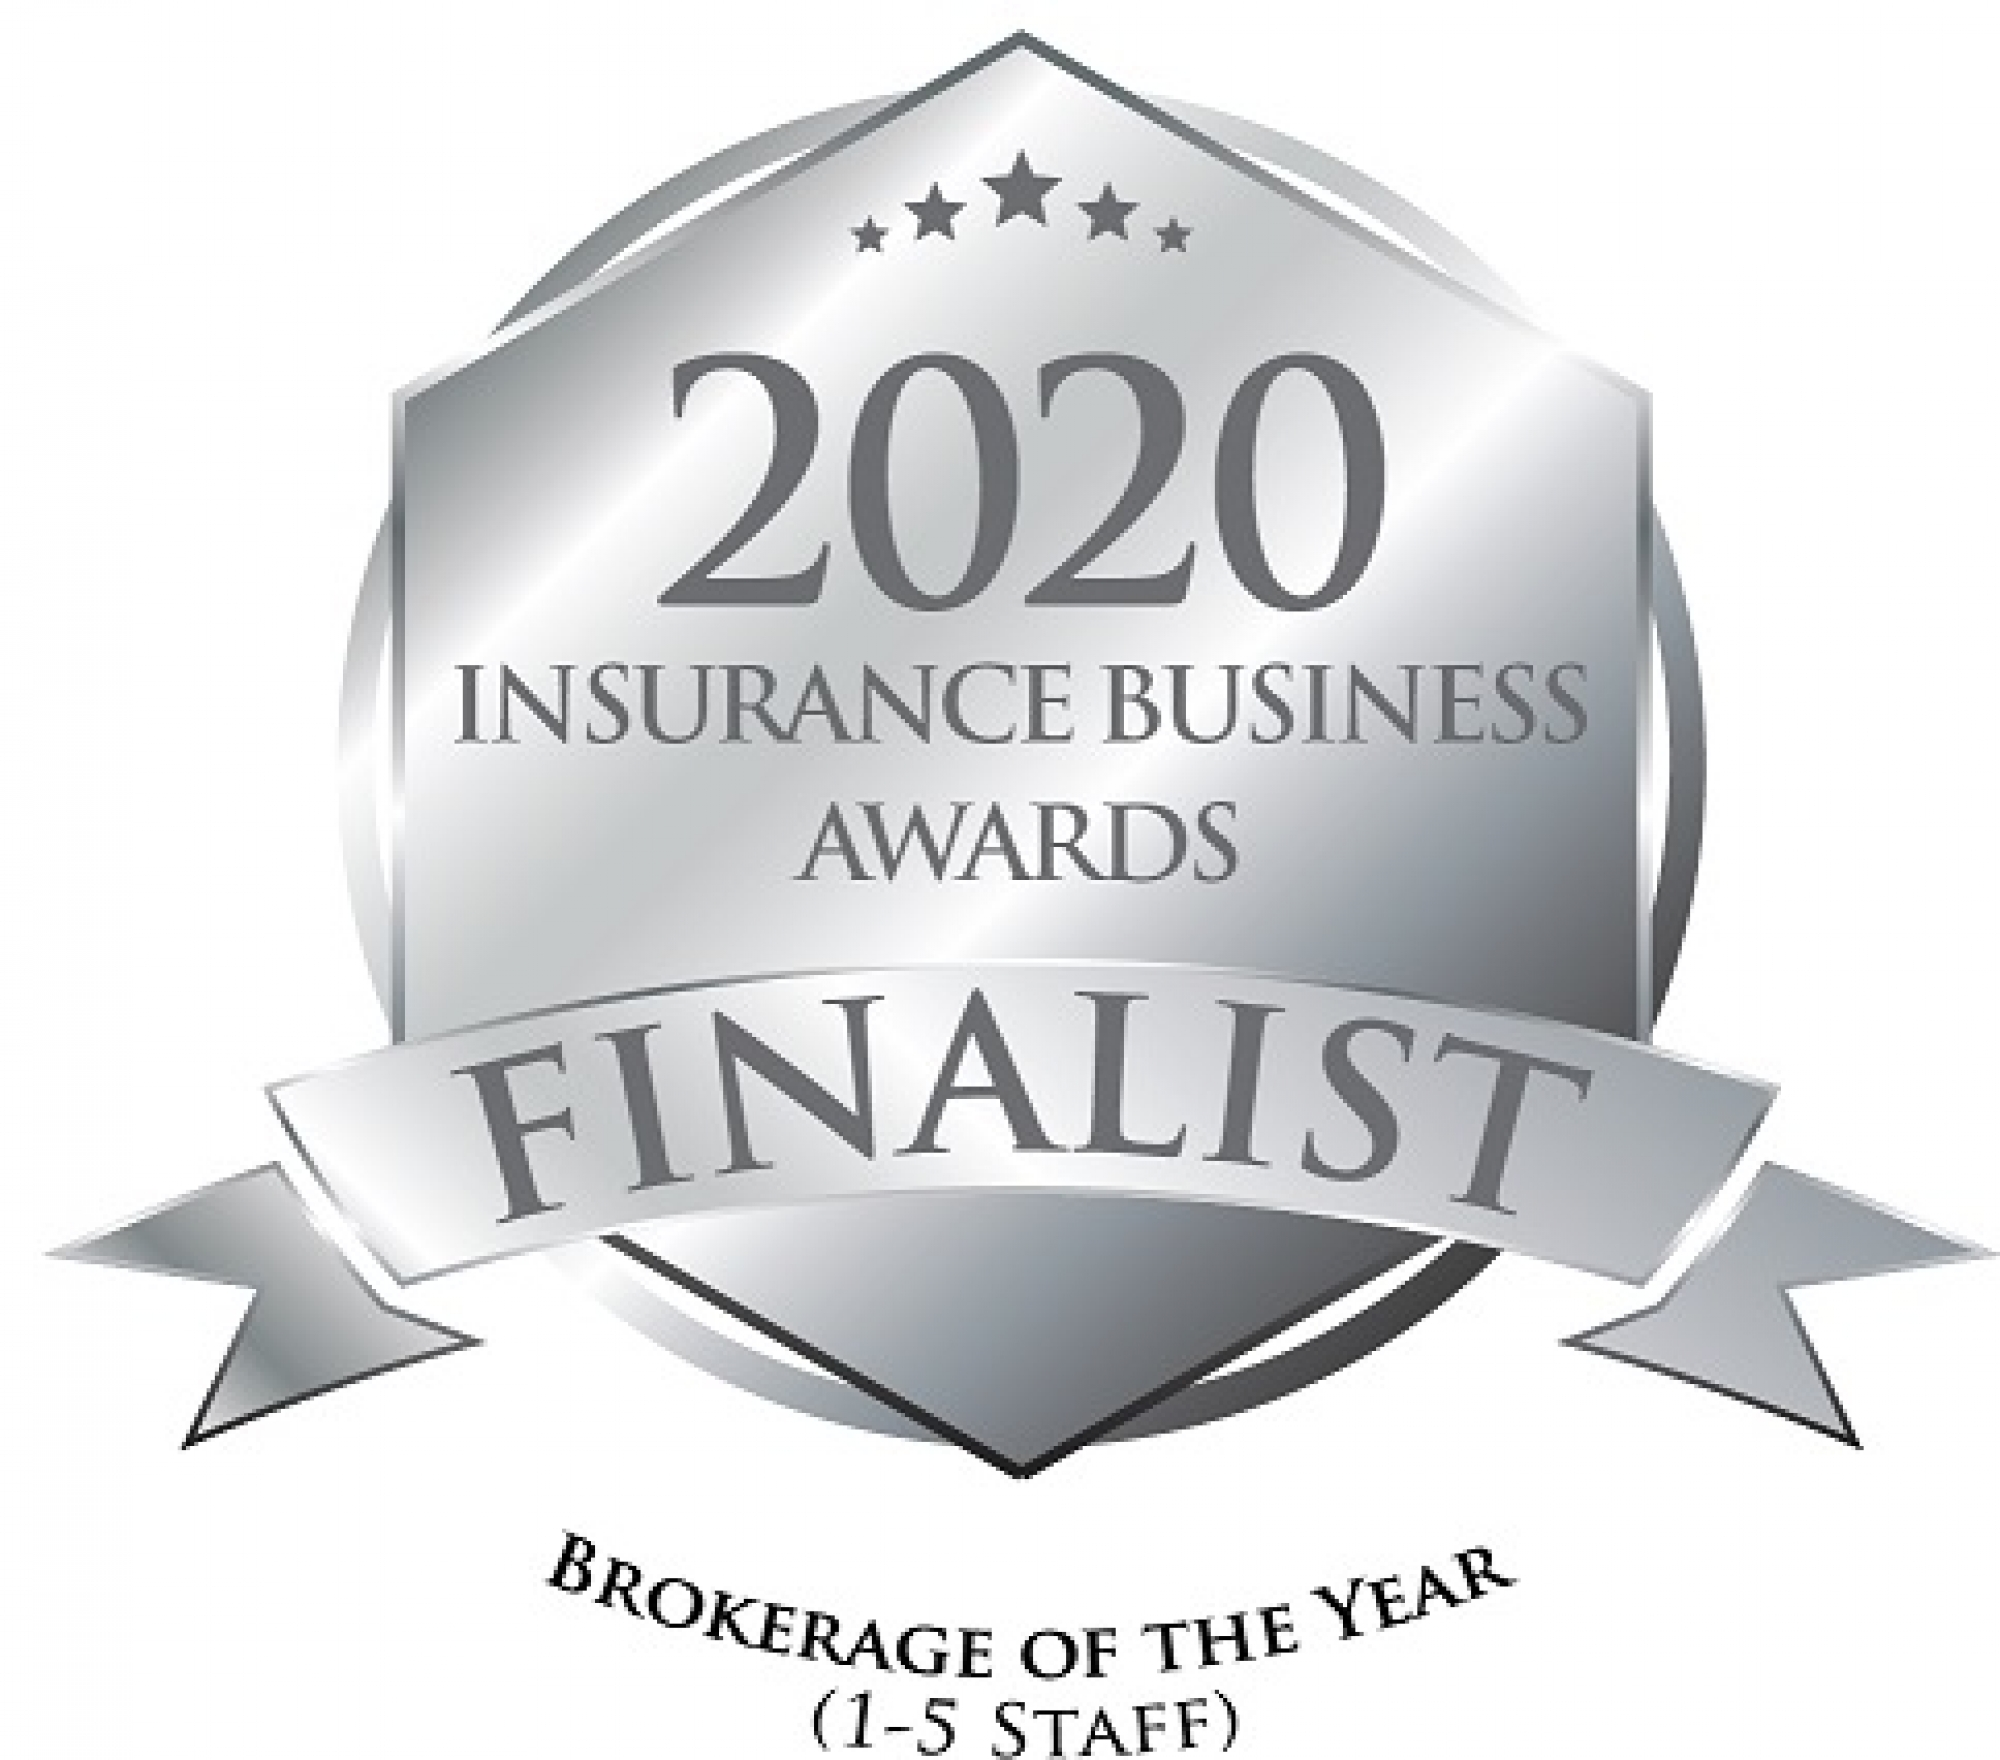 2020 Insurance Business Awards Finalist - Brokerage of the Year (1-5 Staff)